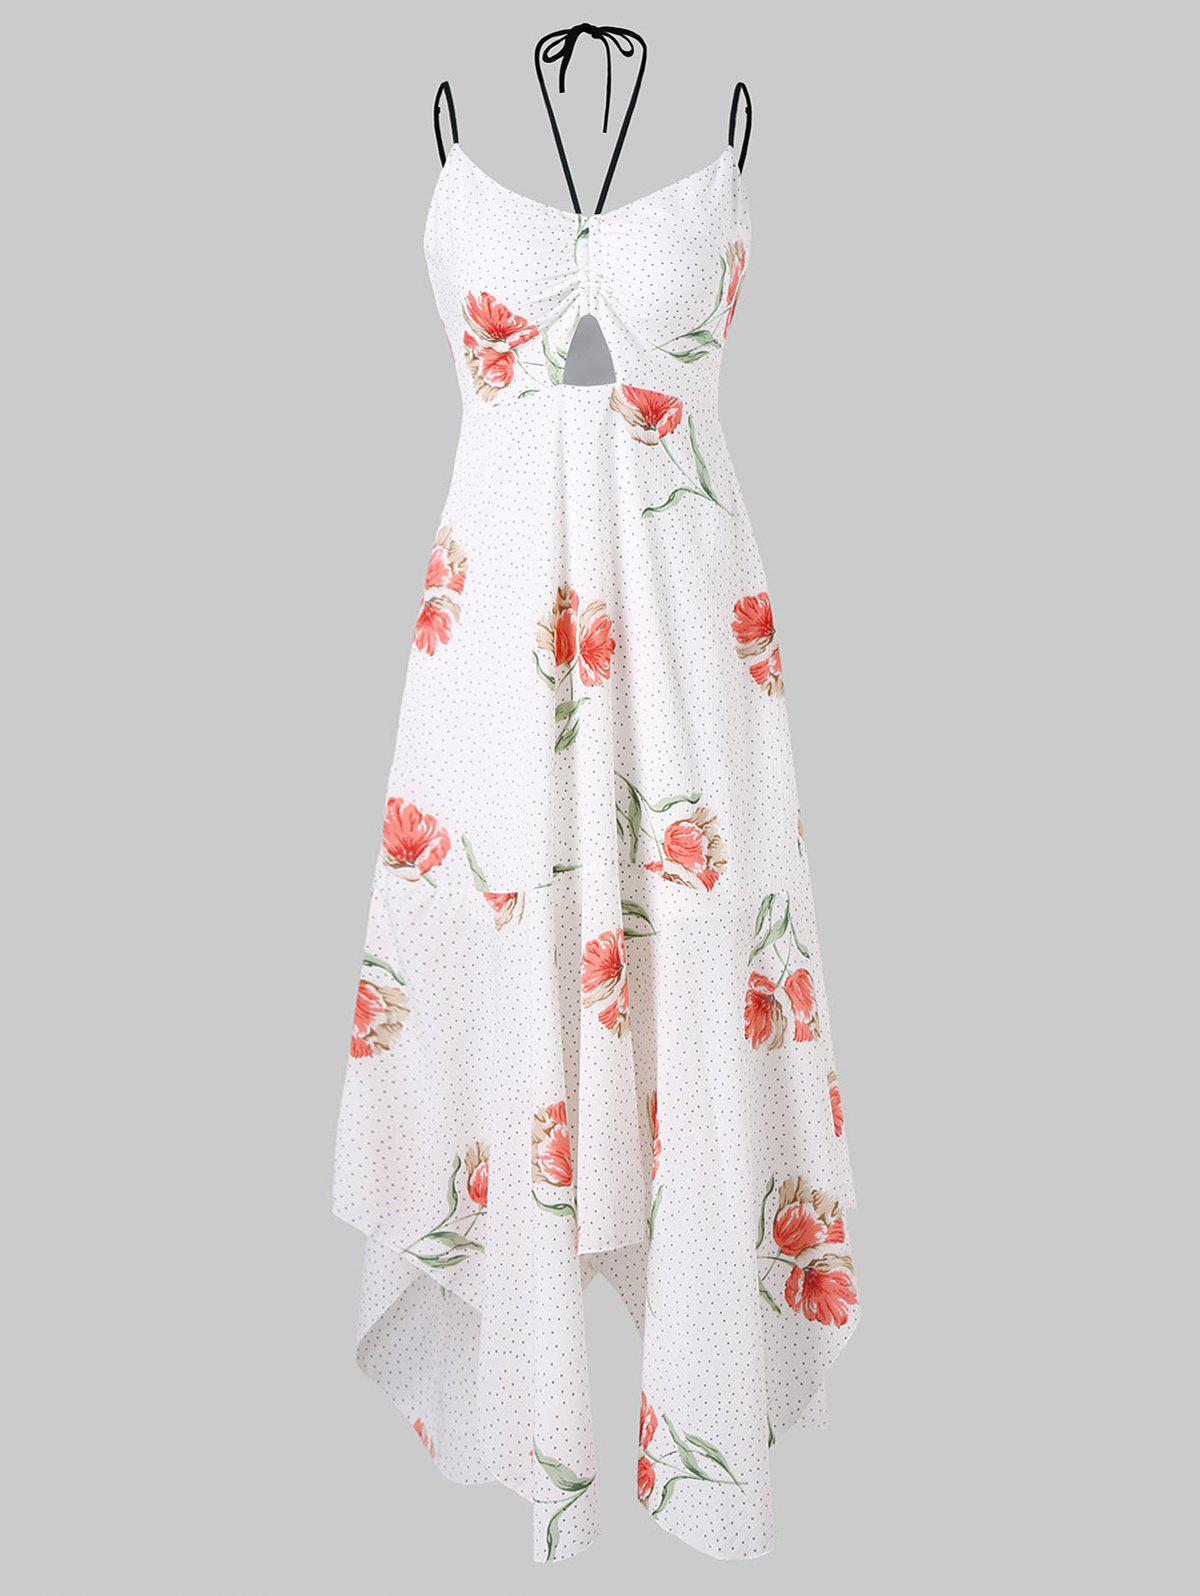 Best Floral and Dotted Print Midi Summer Dress